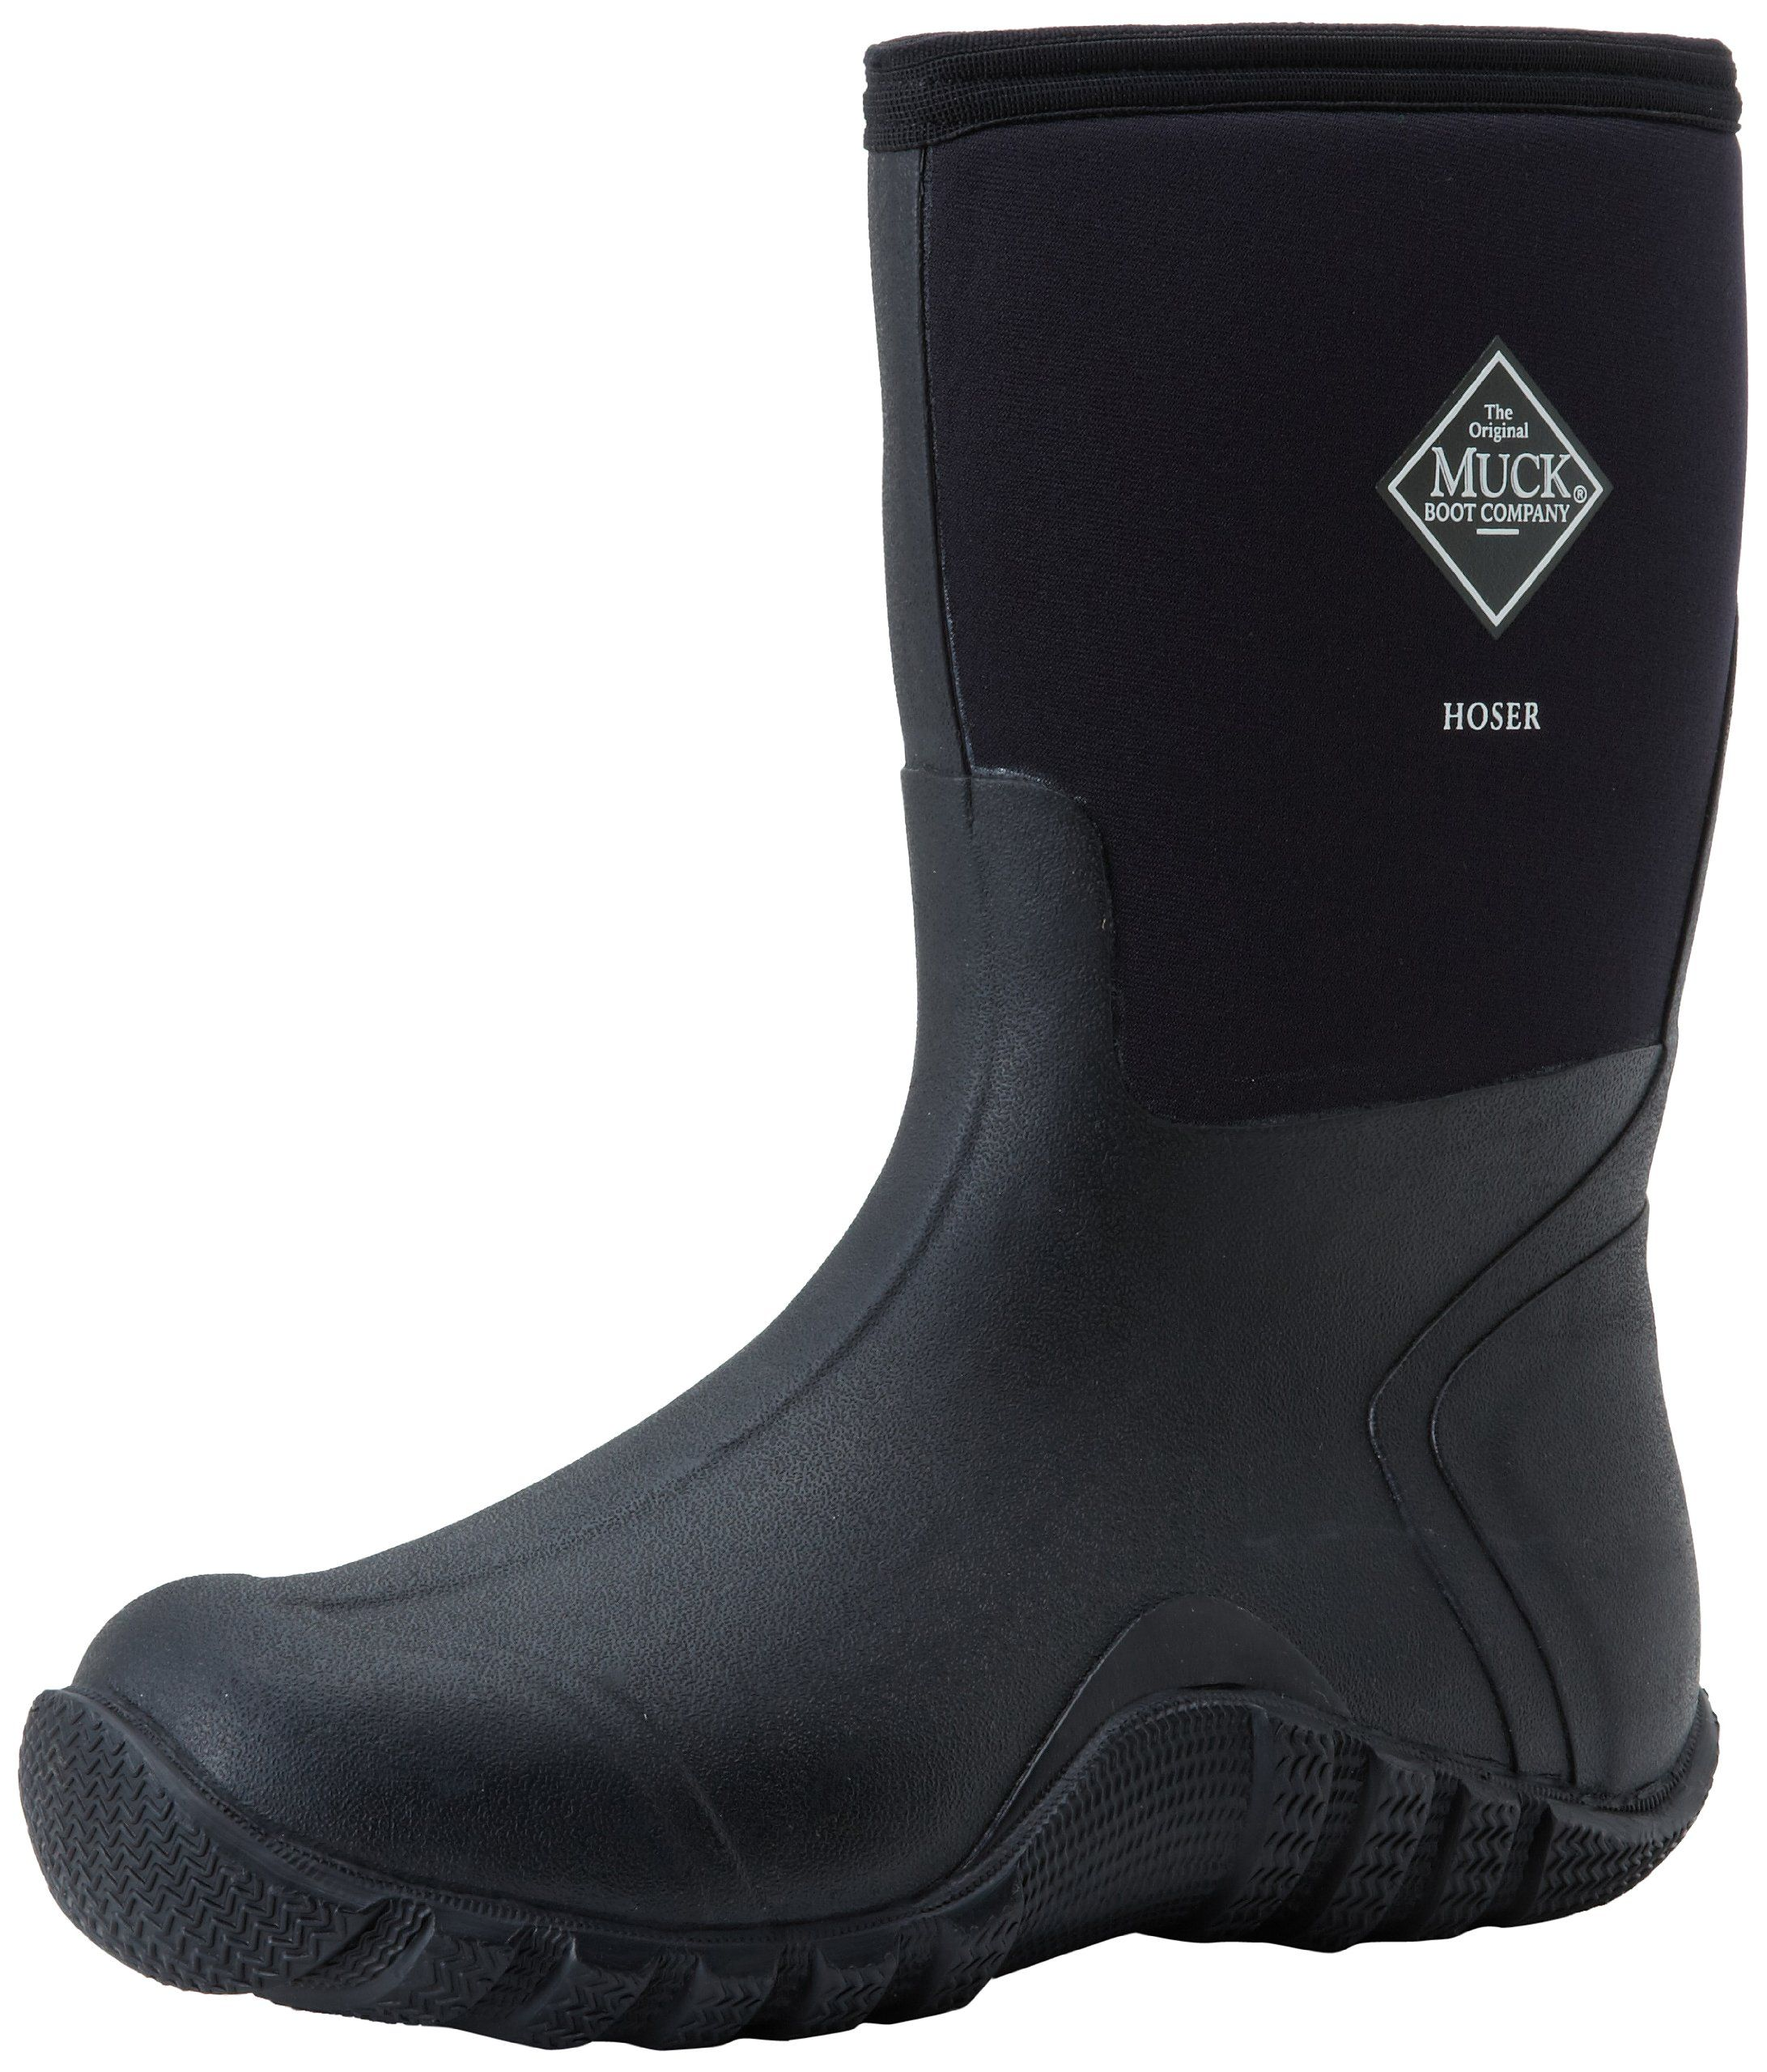 The Original MuckBoots Adult Hoser Mid Boot,Black,7 M US Mens/8